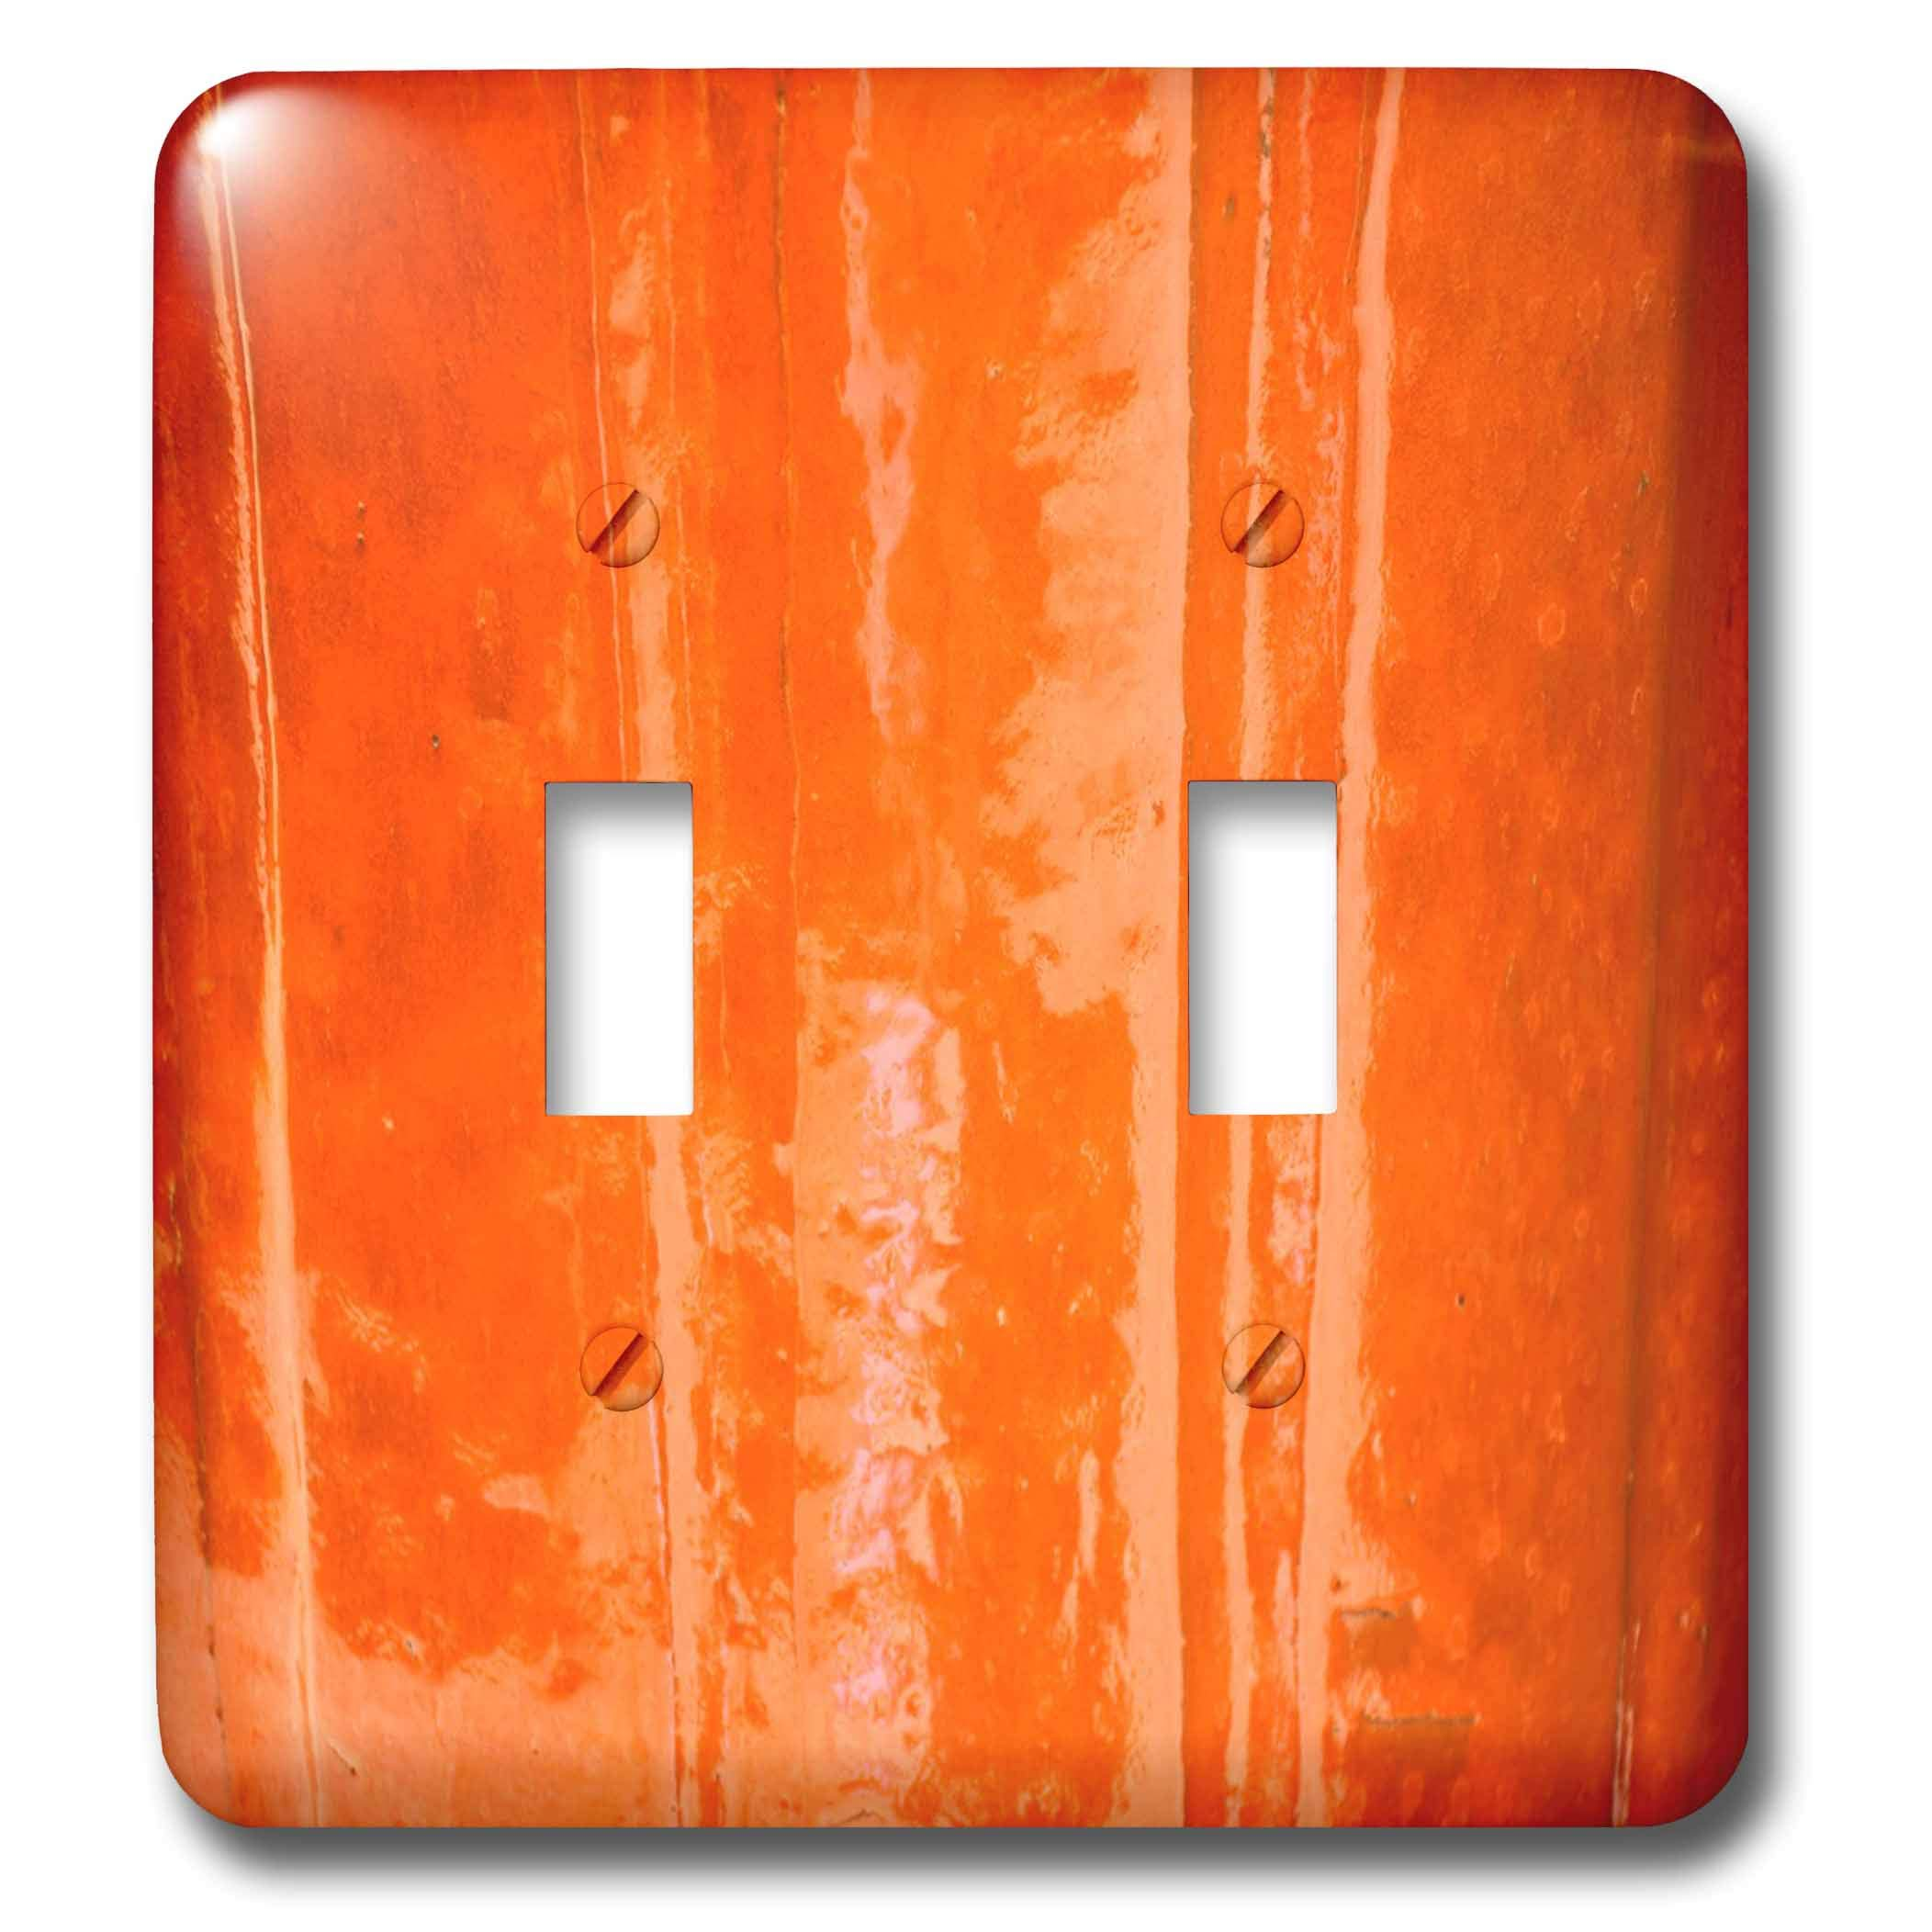 3dRose Lens Art by Florene - Pottery Abstracts - Image of Shades Of Orange Pottery Macro View - Light Switch Covers - double toggle switch (lsp_291458_2)